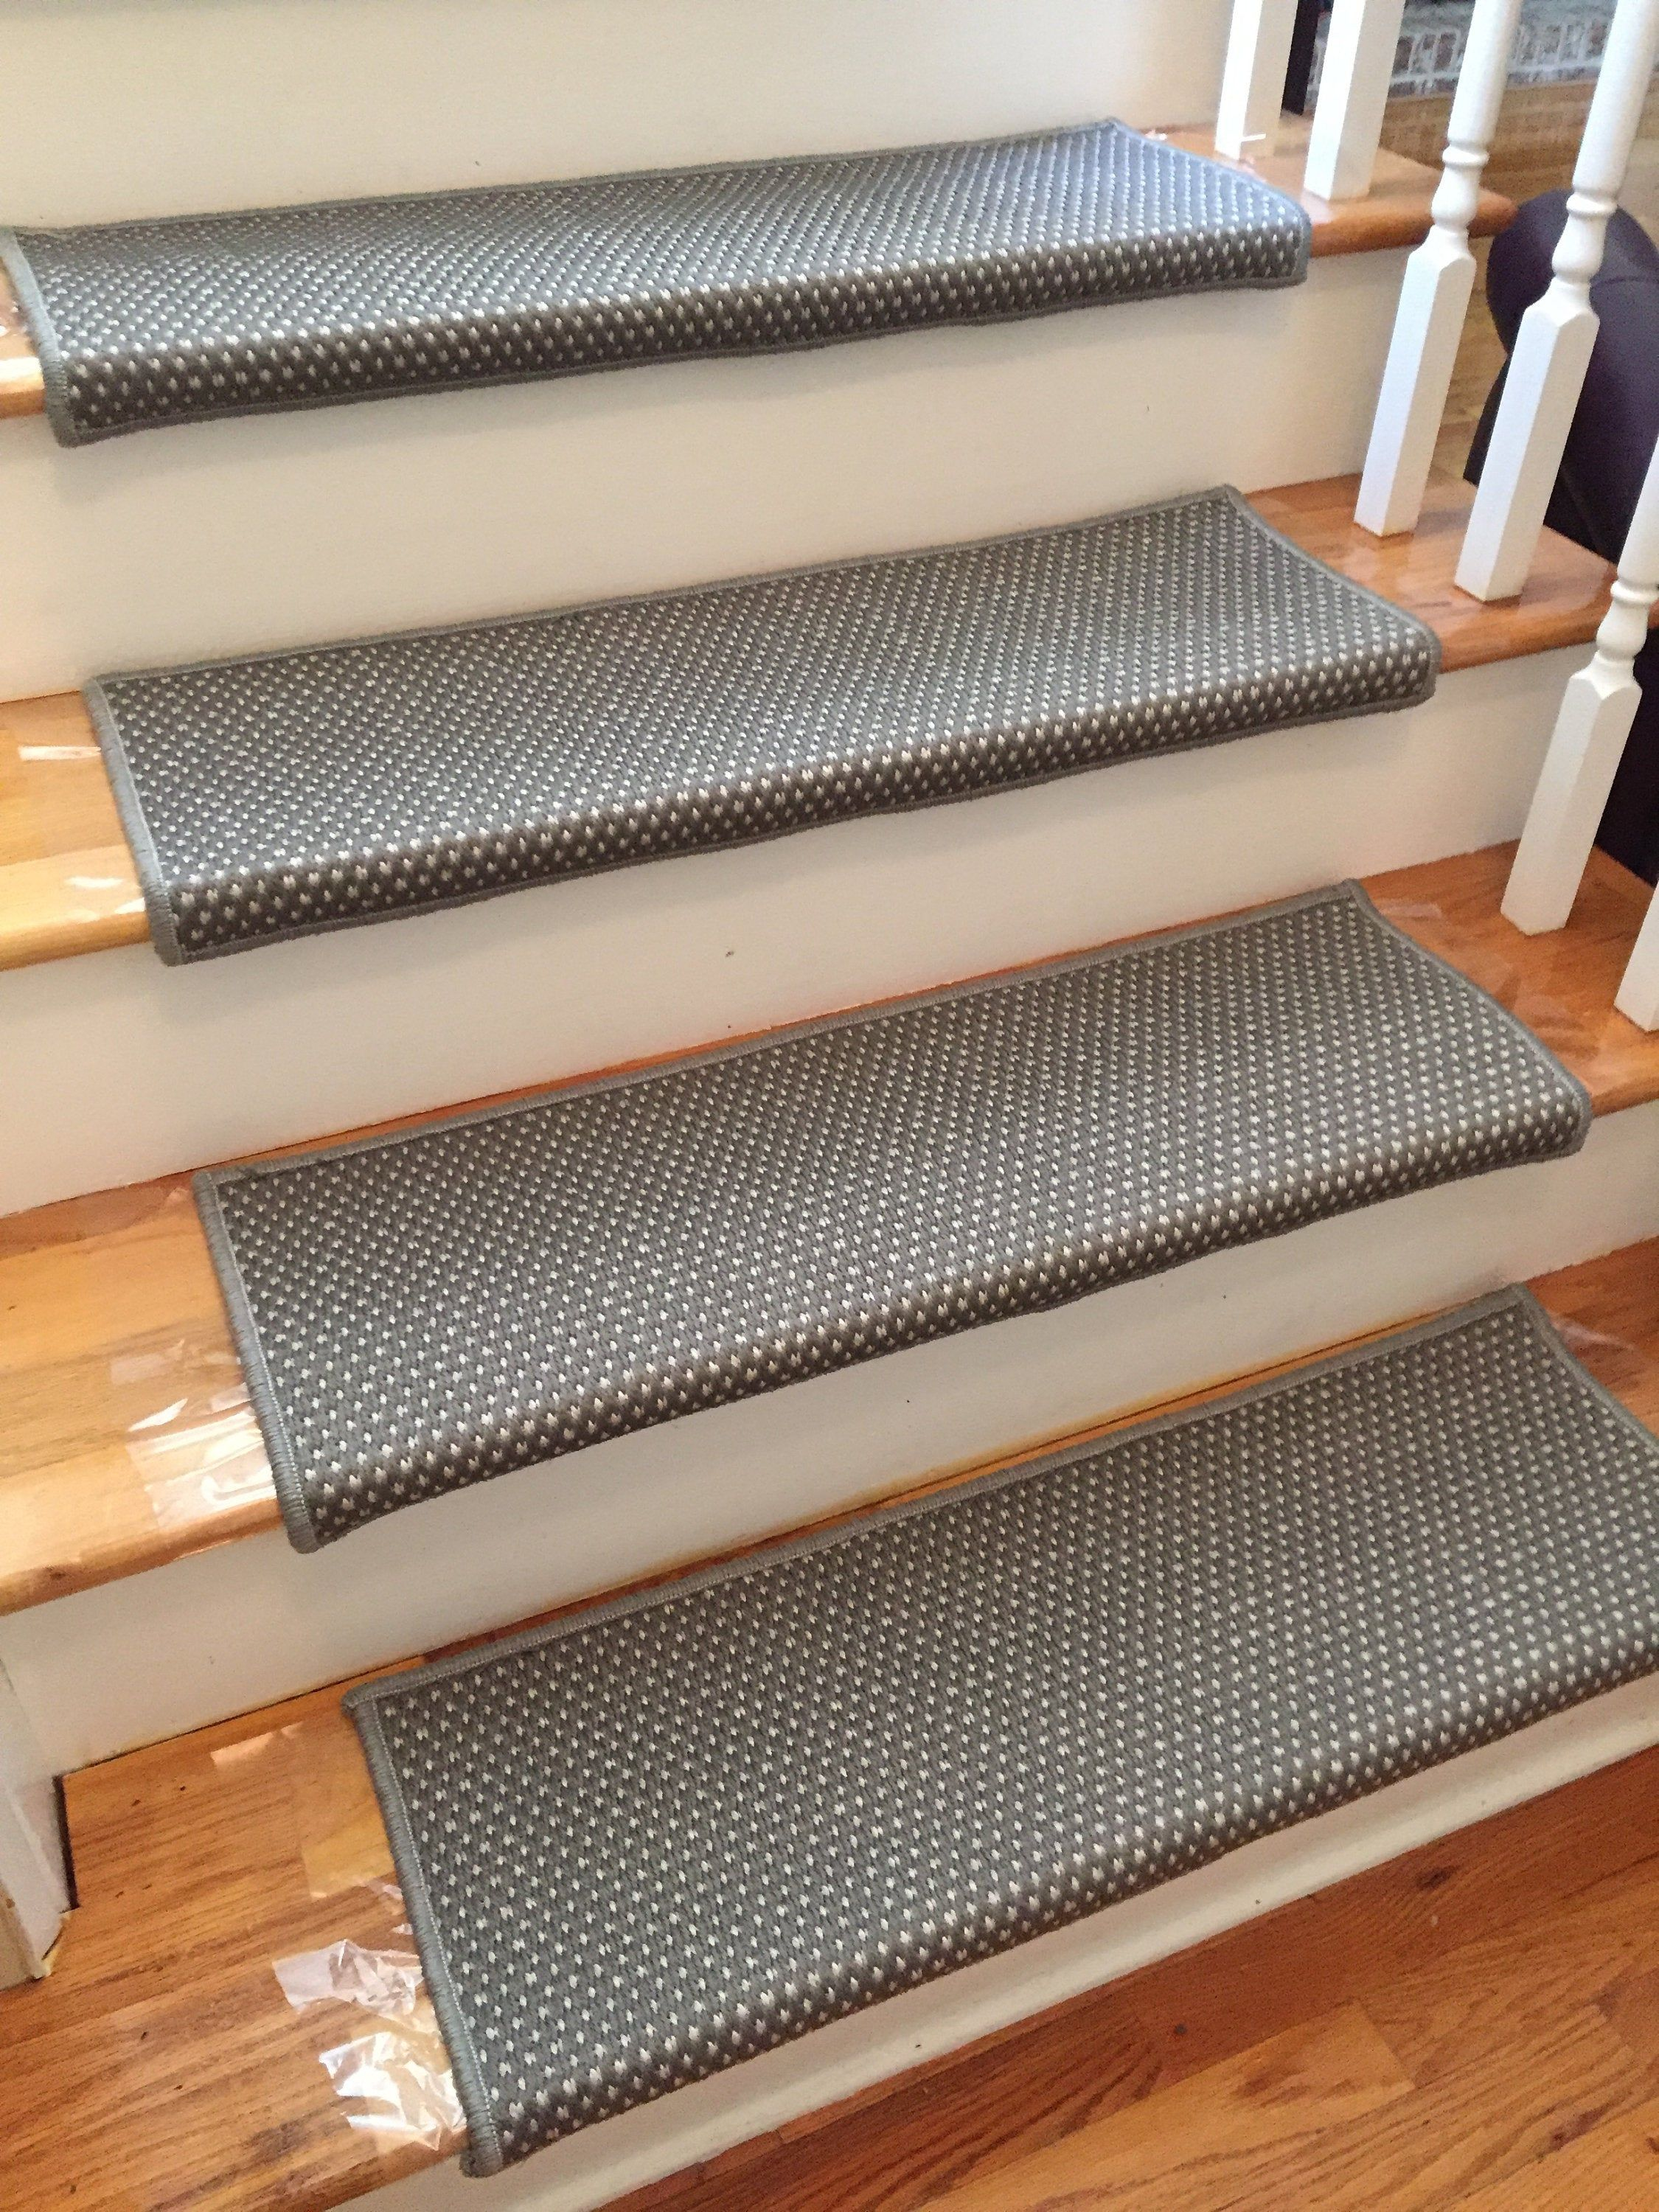 Corolla Sandpiper B Flatweave 100 Uv Stable True Bullnose Padded Carpet Stair Tread Runner Replacement Style Comfort Safety Sold Each Carpet Stair Treads Stair Treads Flat Weave